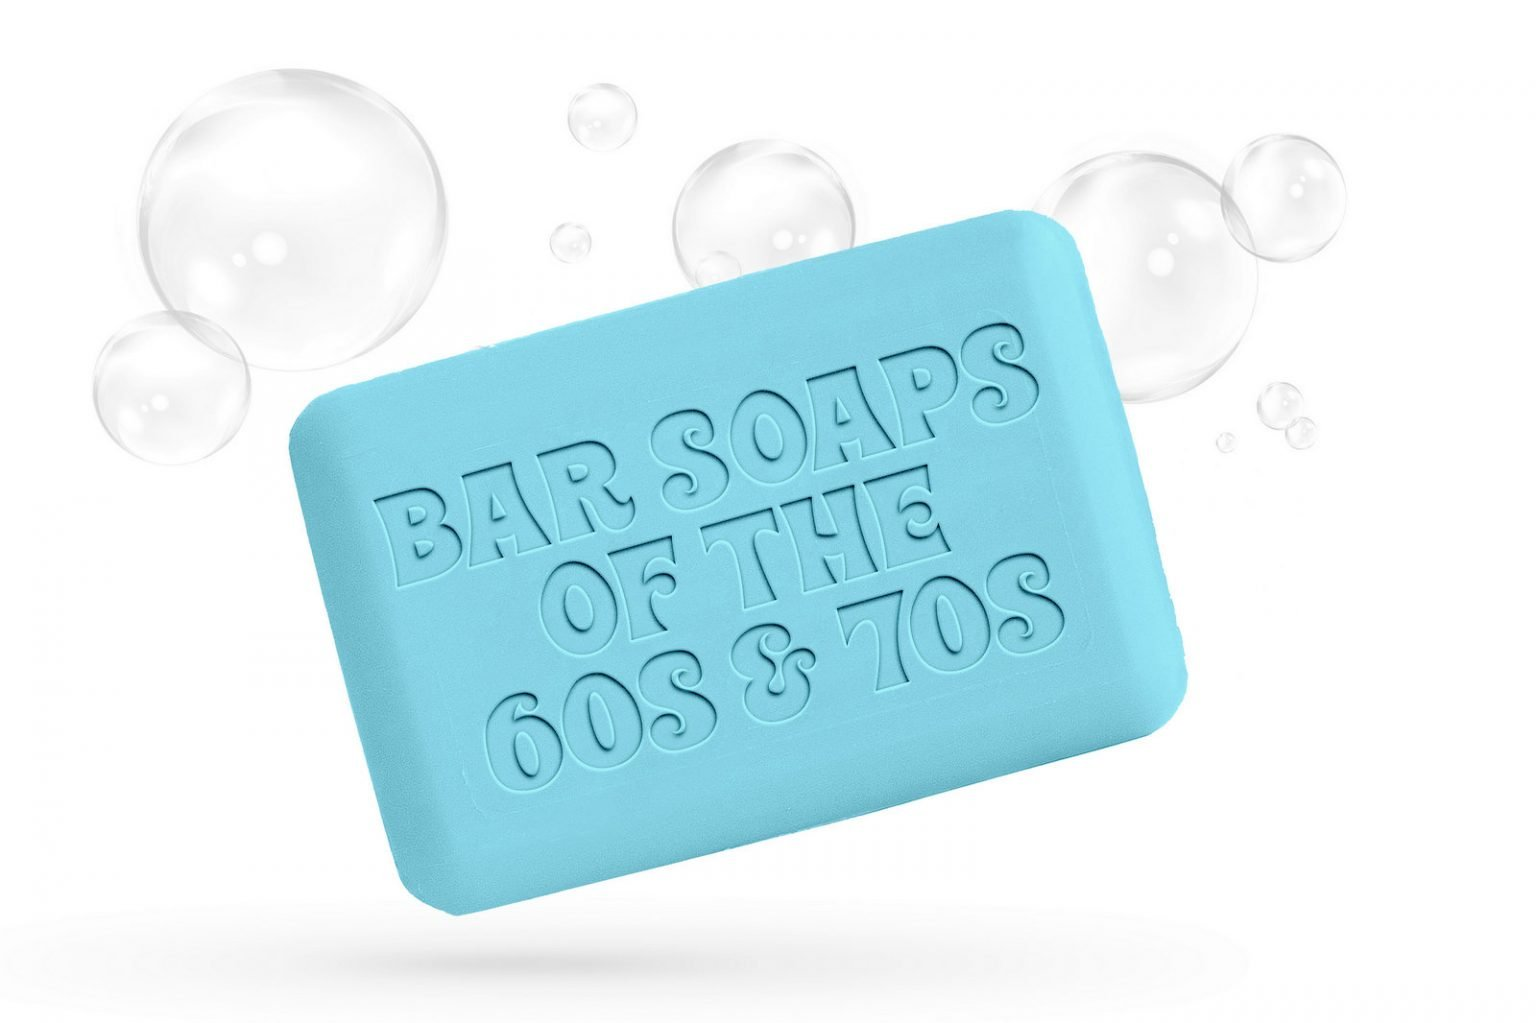 Popular bar soaps from the 60s and 70s